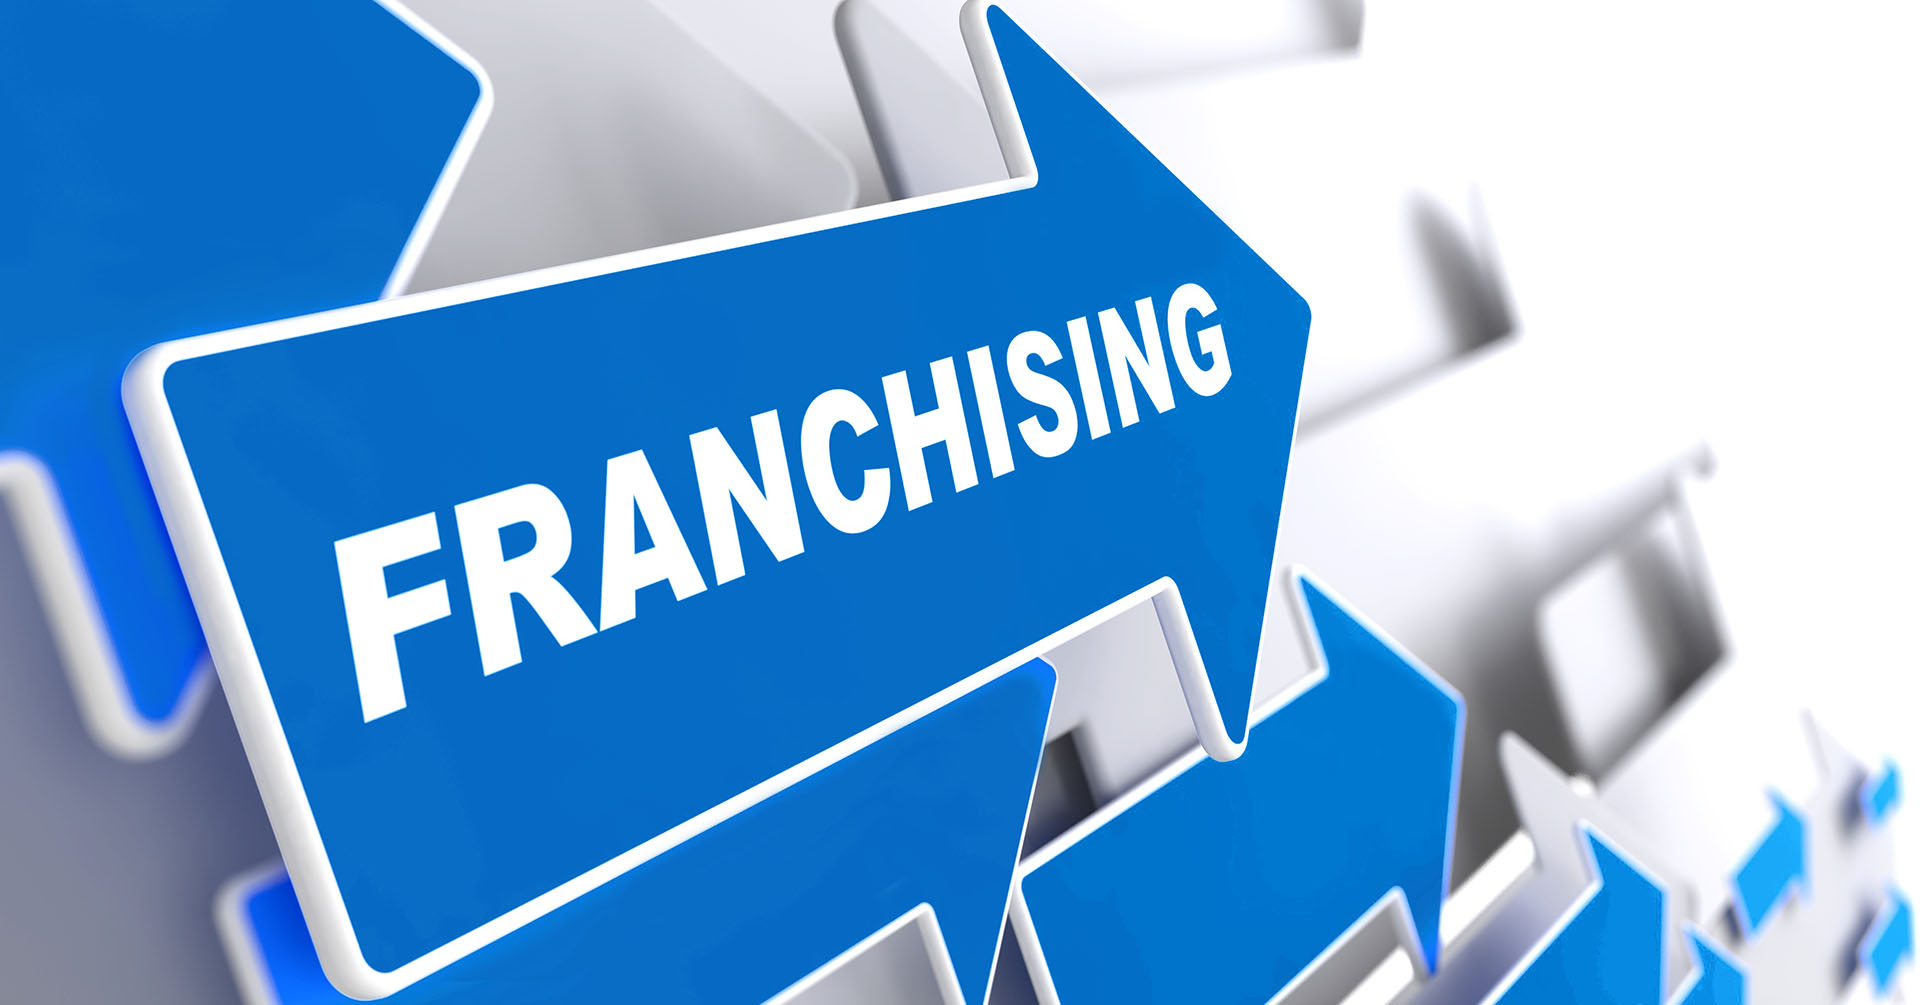 Franchising Global Forum